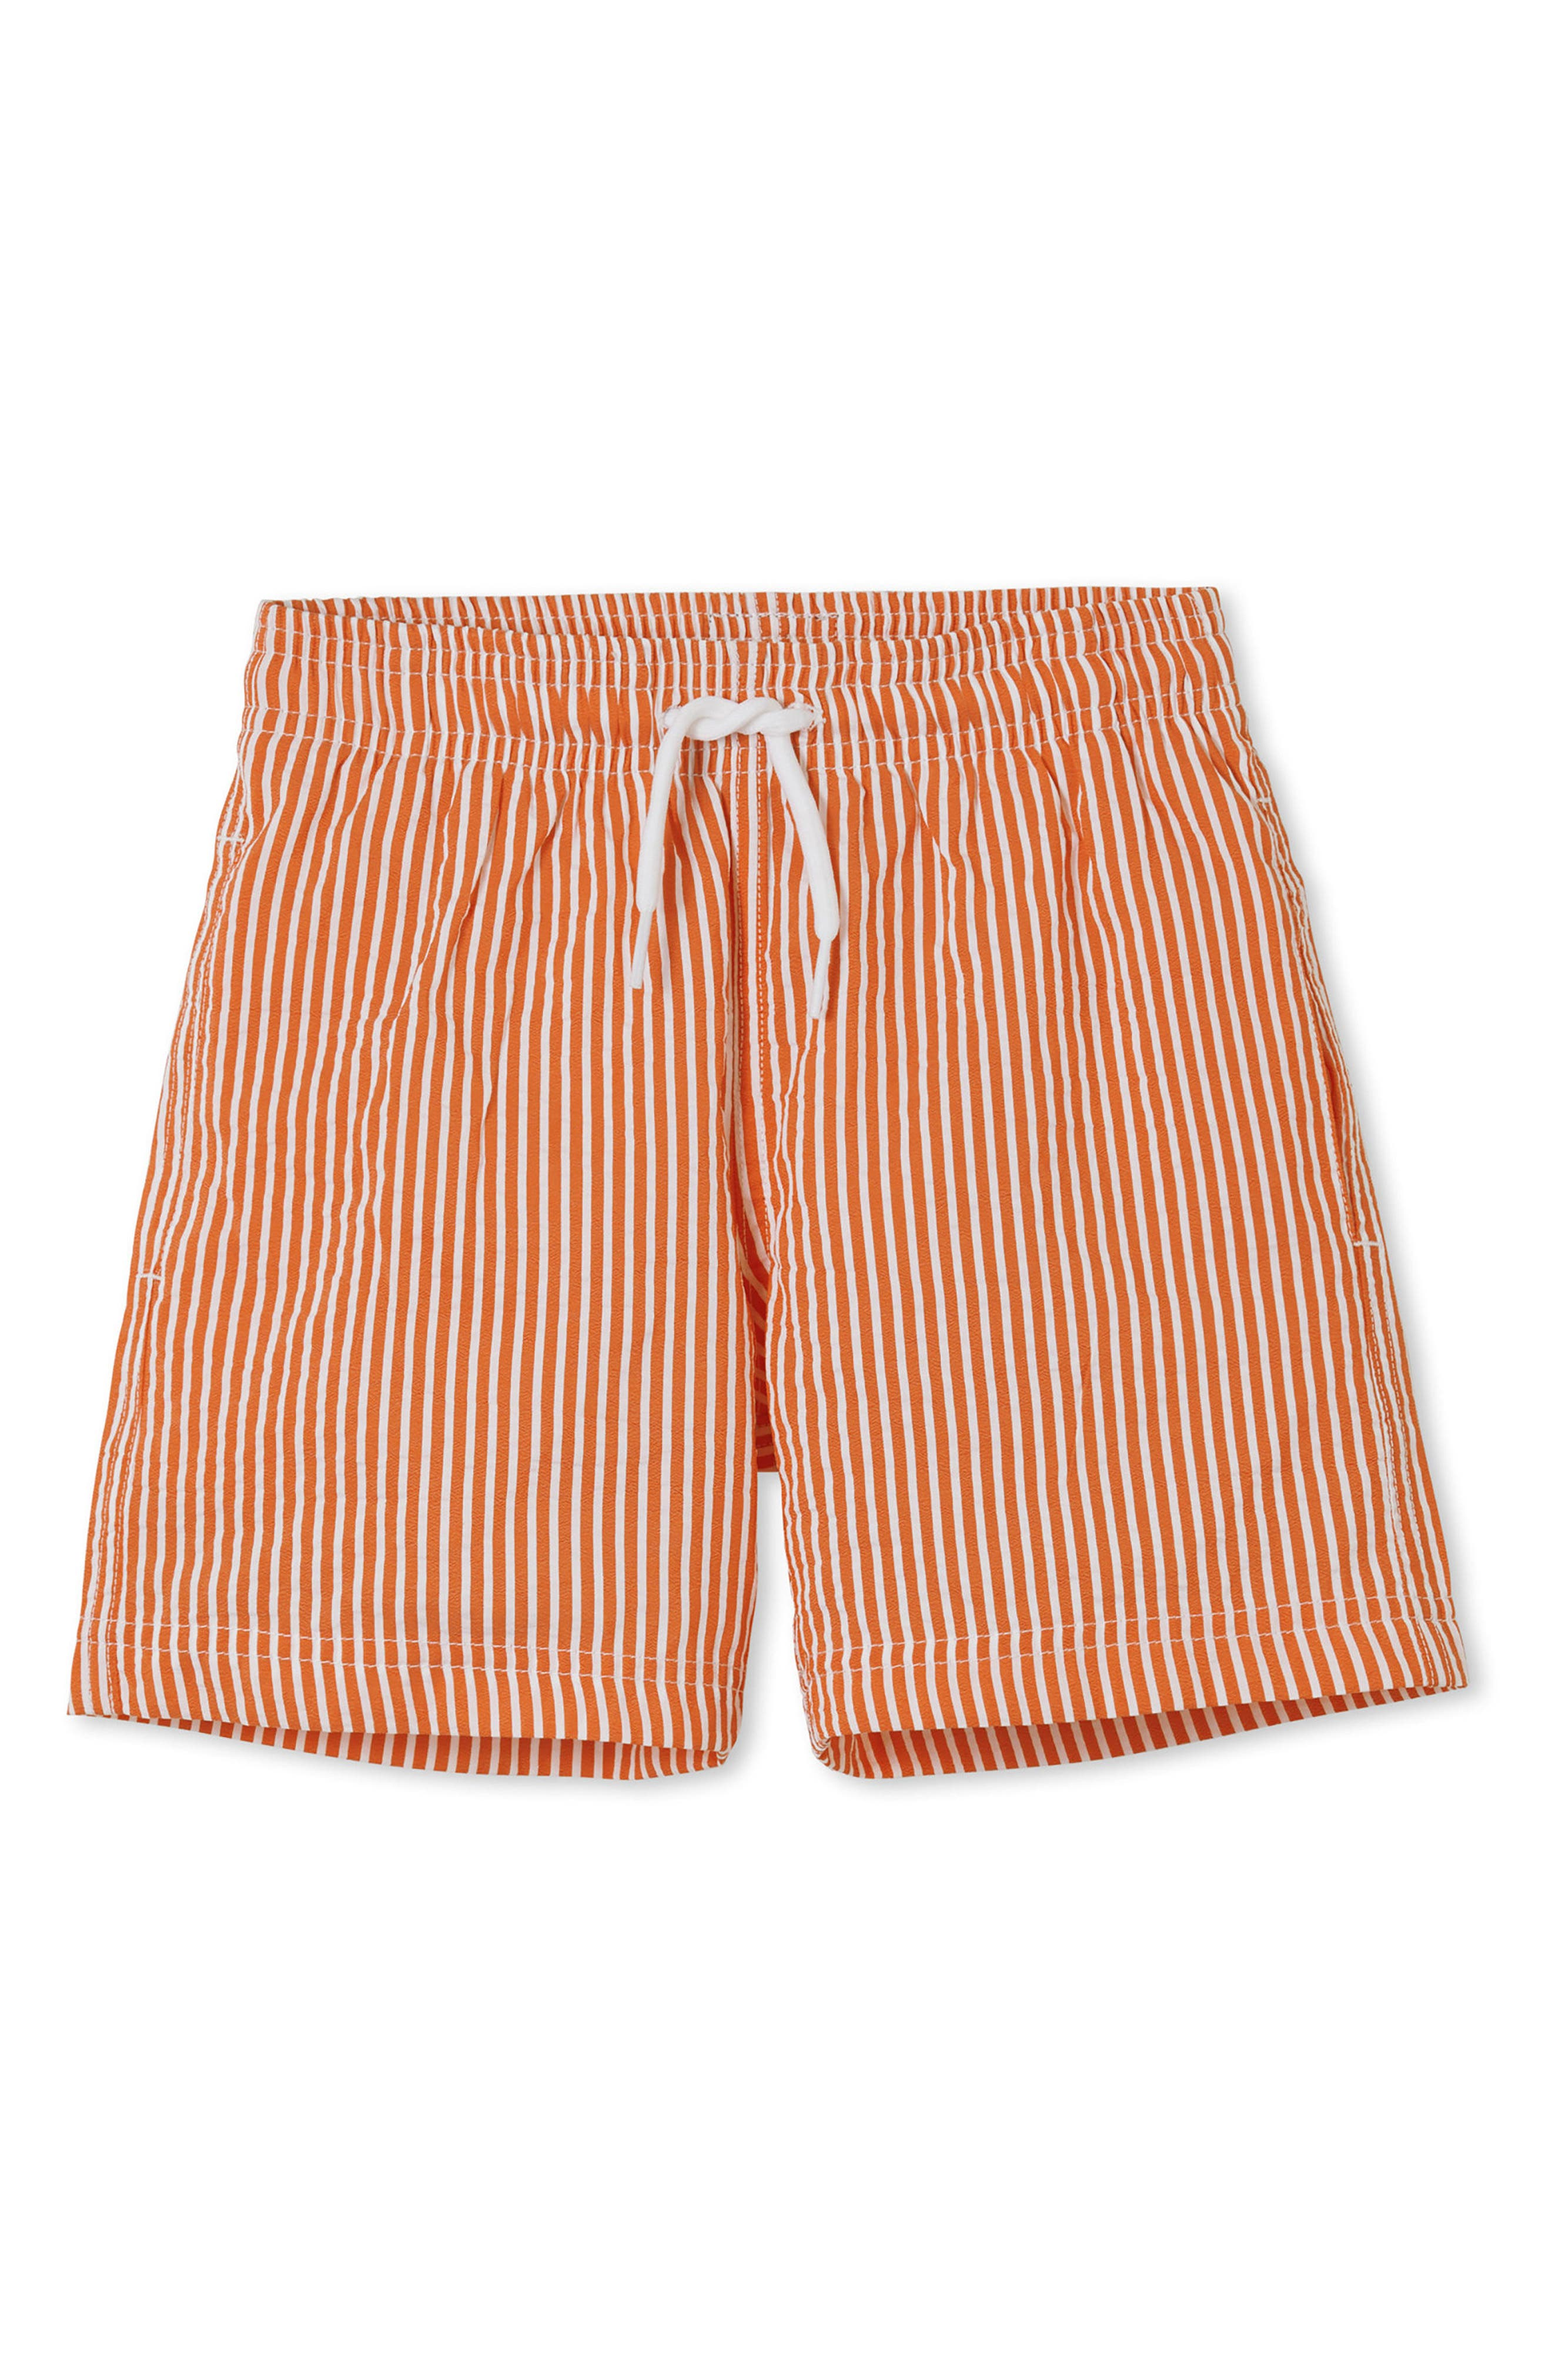 Stella Cove Orange Stripe Swim Trunks (Big Boys)